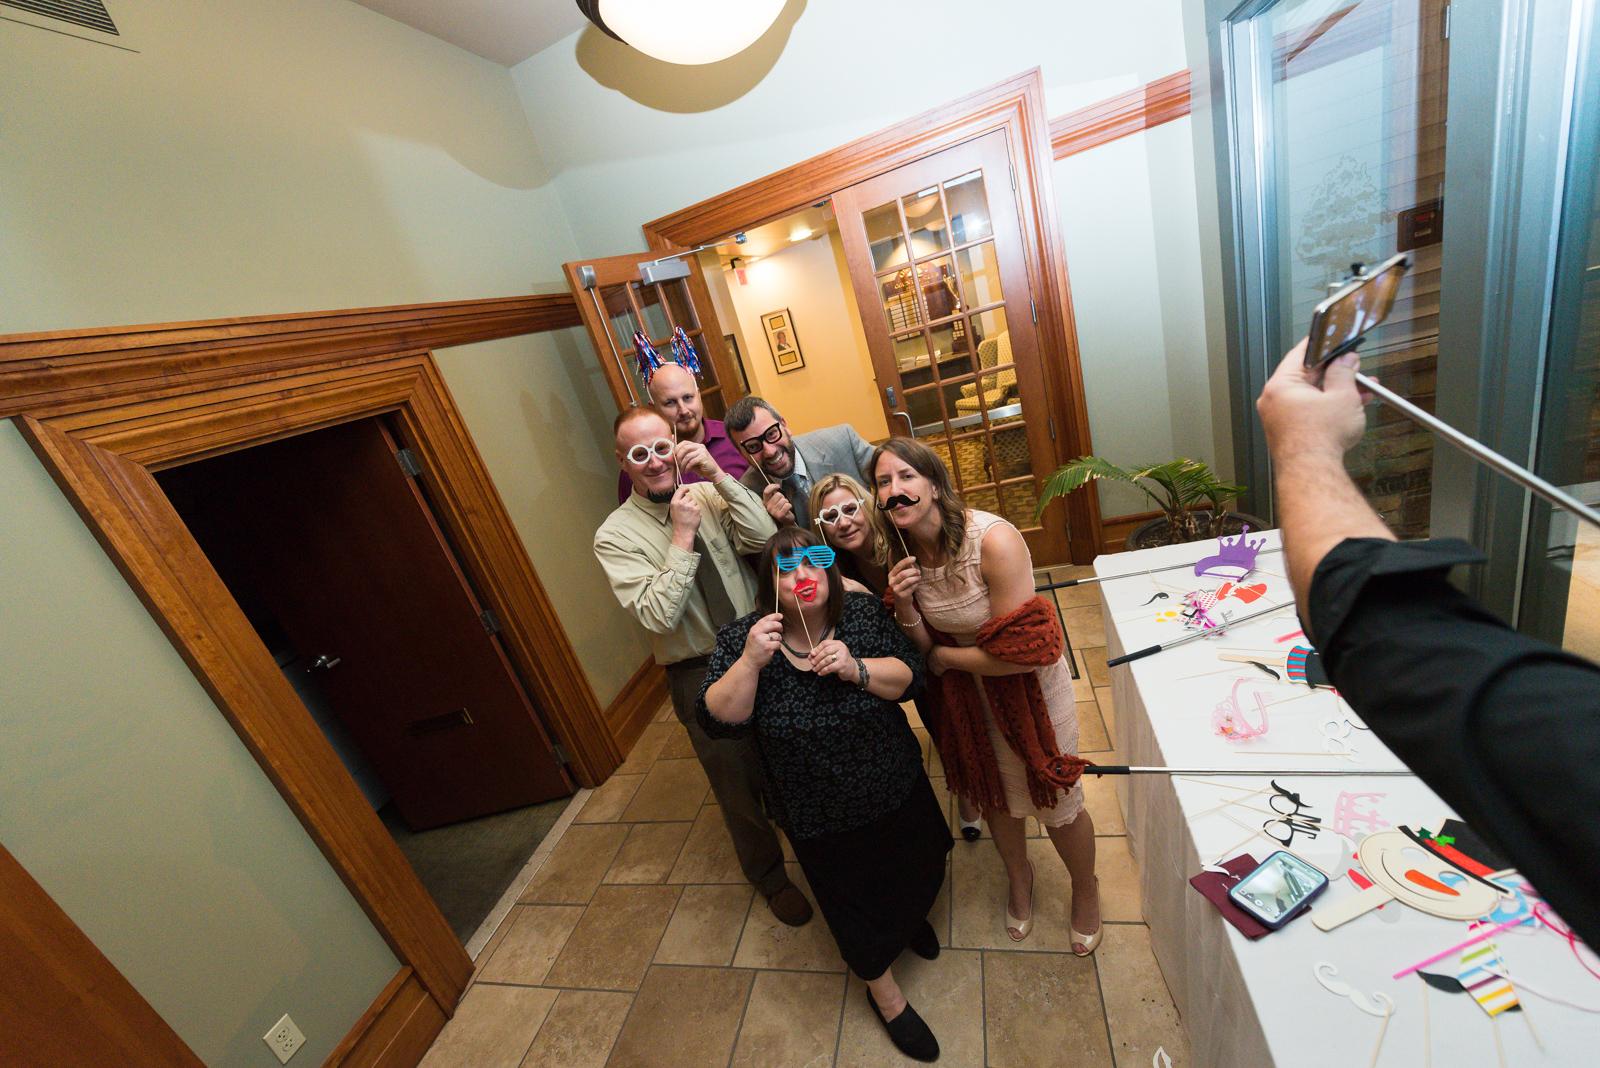 Scranton-clarks-summit-wedding-glen-oaks-contry-club-wedding-photographer-steven-serge-93.jpg